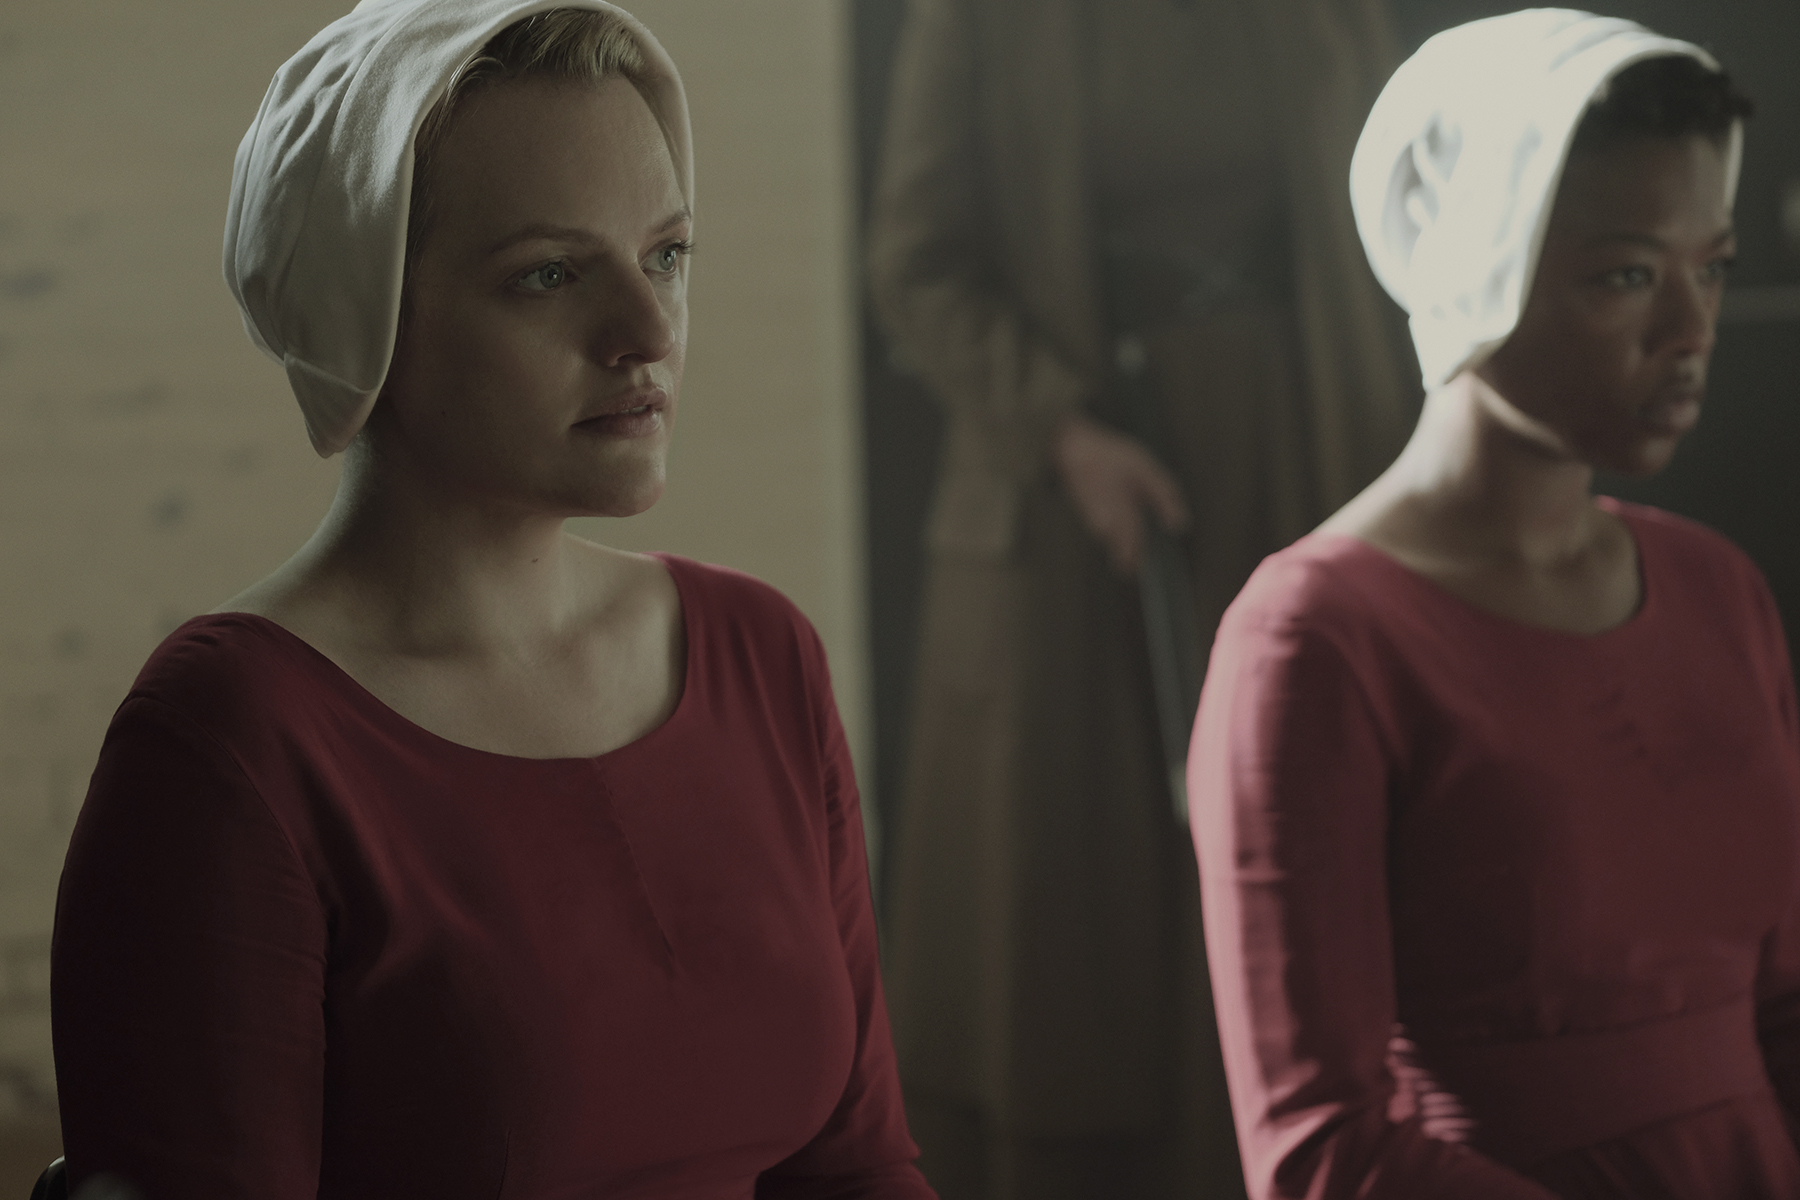 the handmaid's tale, HBO, HBO Nordic, streaming, serie, elisabeth moss, offred, june